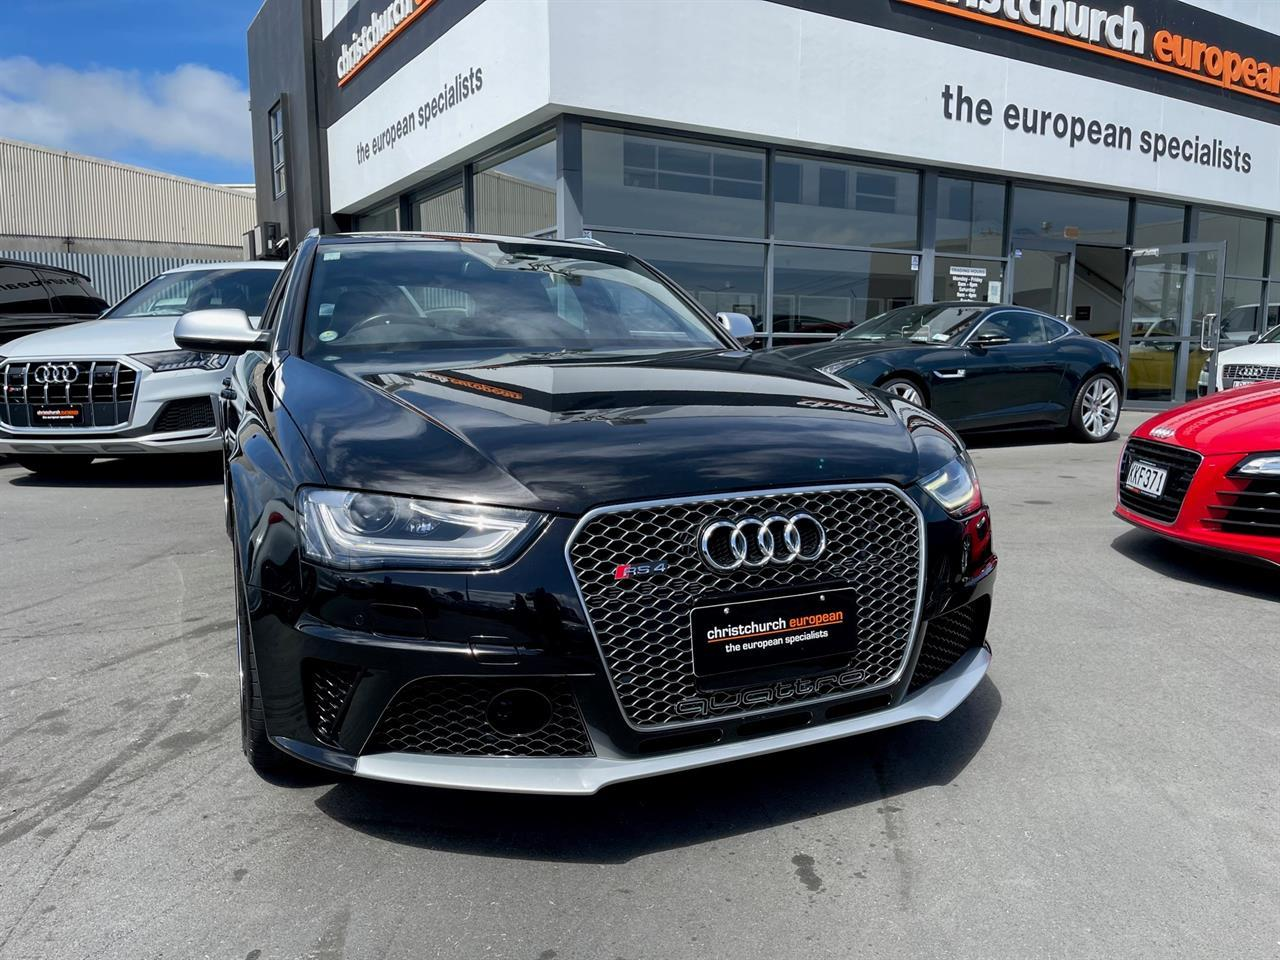 image-1, 2013 Audi RS4 4.2 V8 FSI Quattro Black Pack Wagon at Christchurch